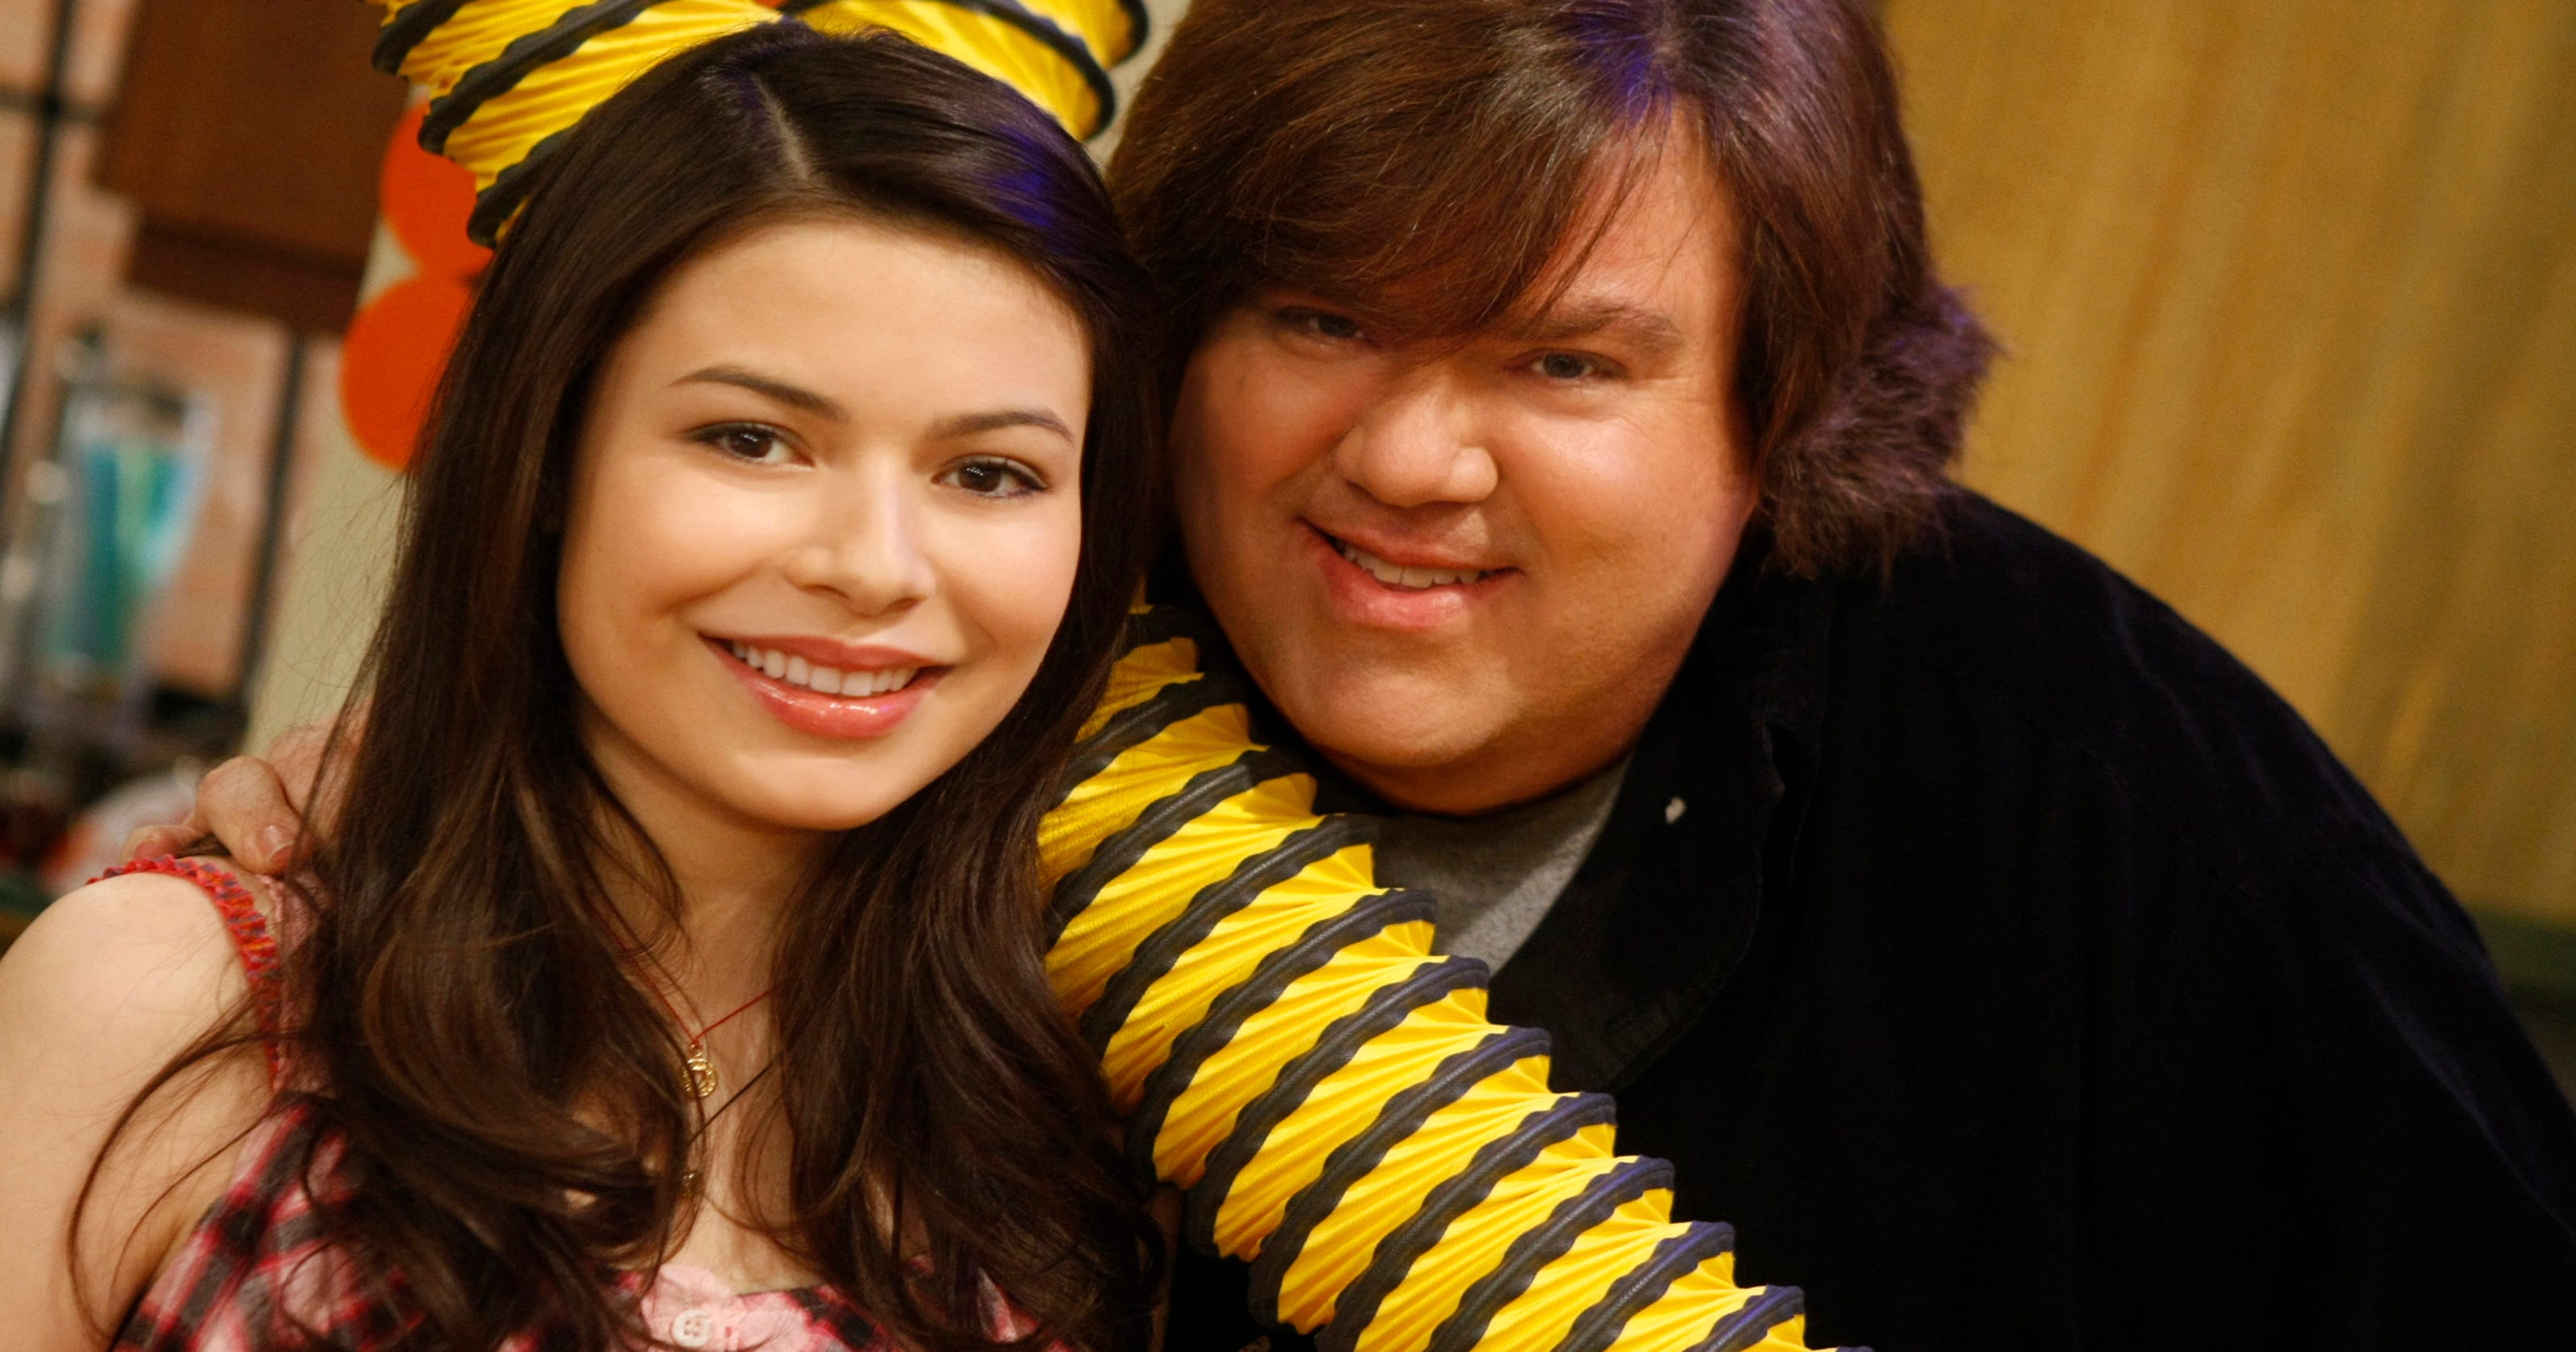 Nickelodeon Cuts Ties With Longtime Producer Dan Schneider